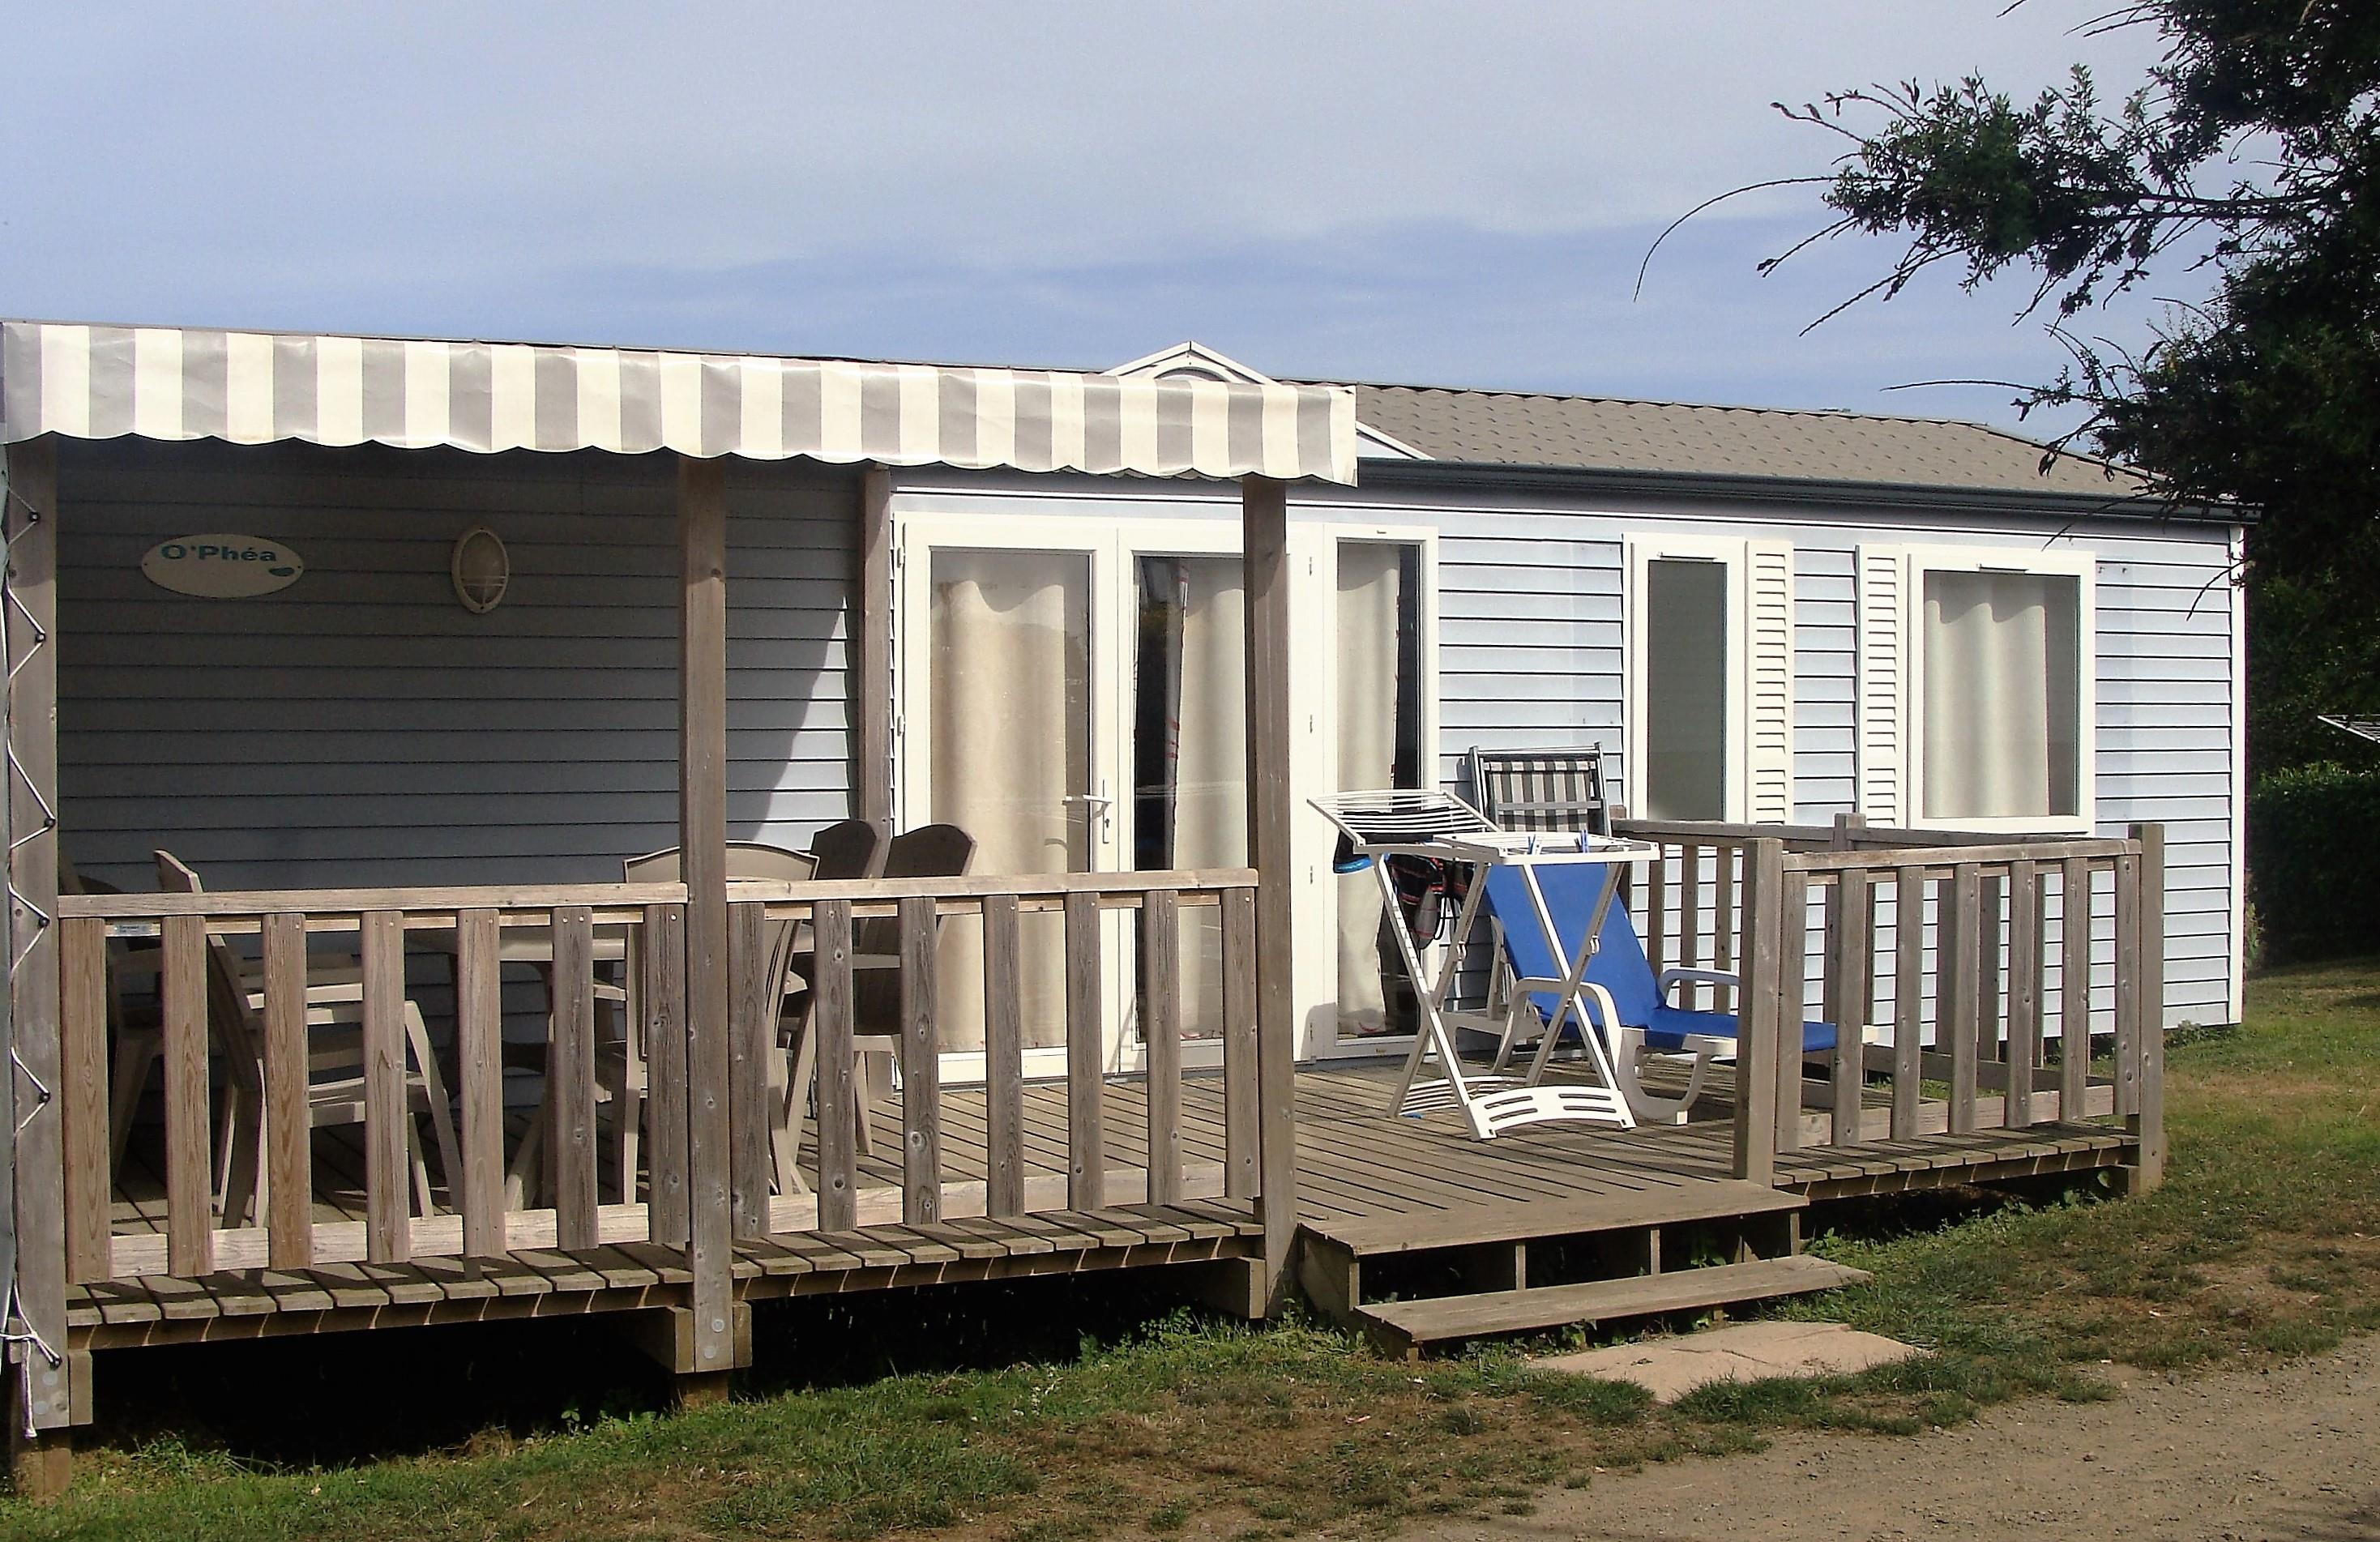 Locatifs - Mobile Home Super Family 2 36M² Avec Terrasse Bois Semi Couverte - Camping Le Panoramic